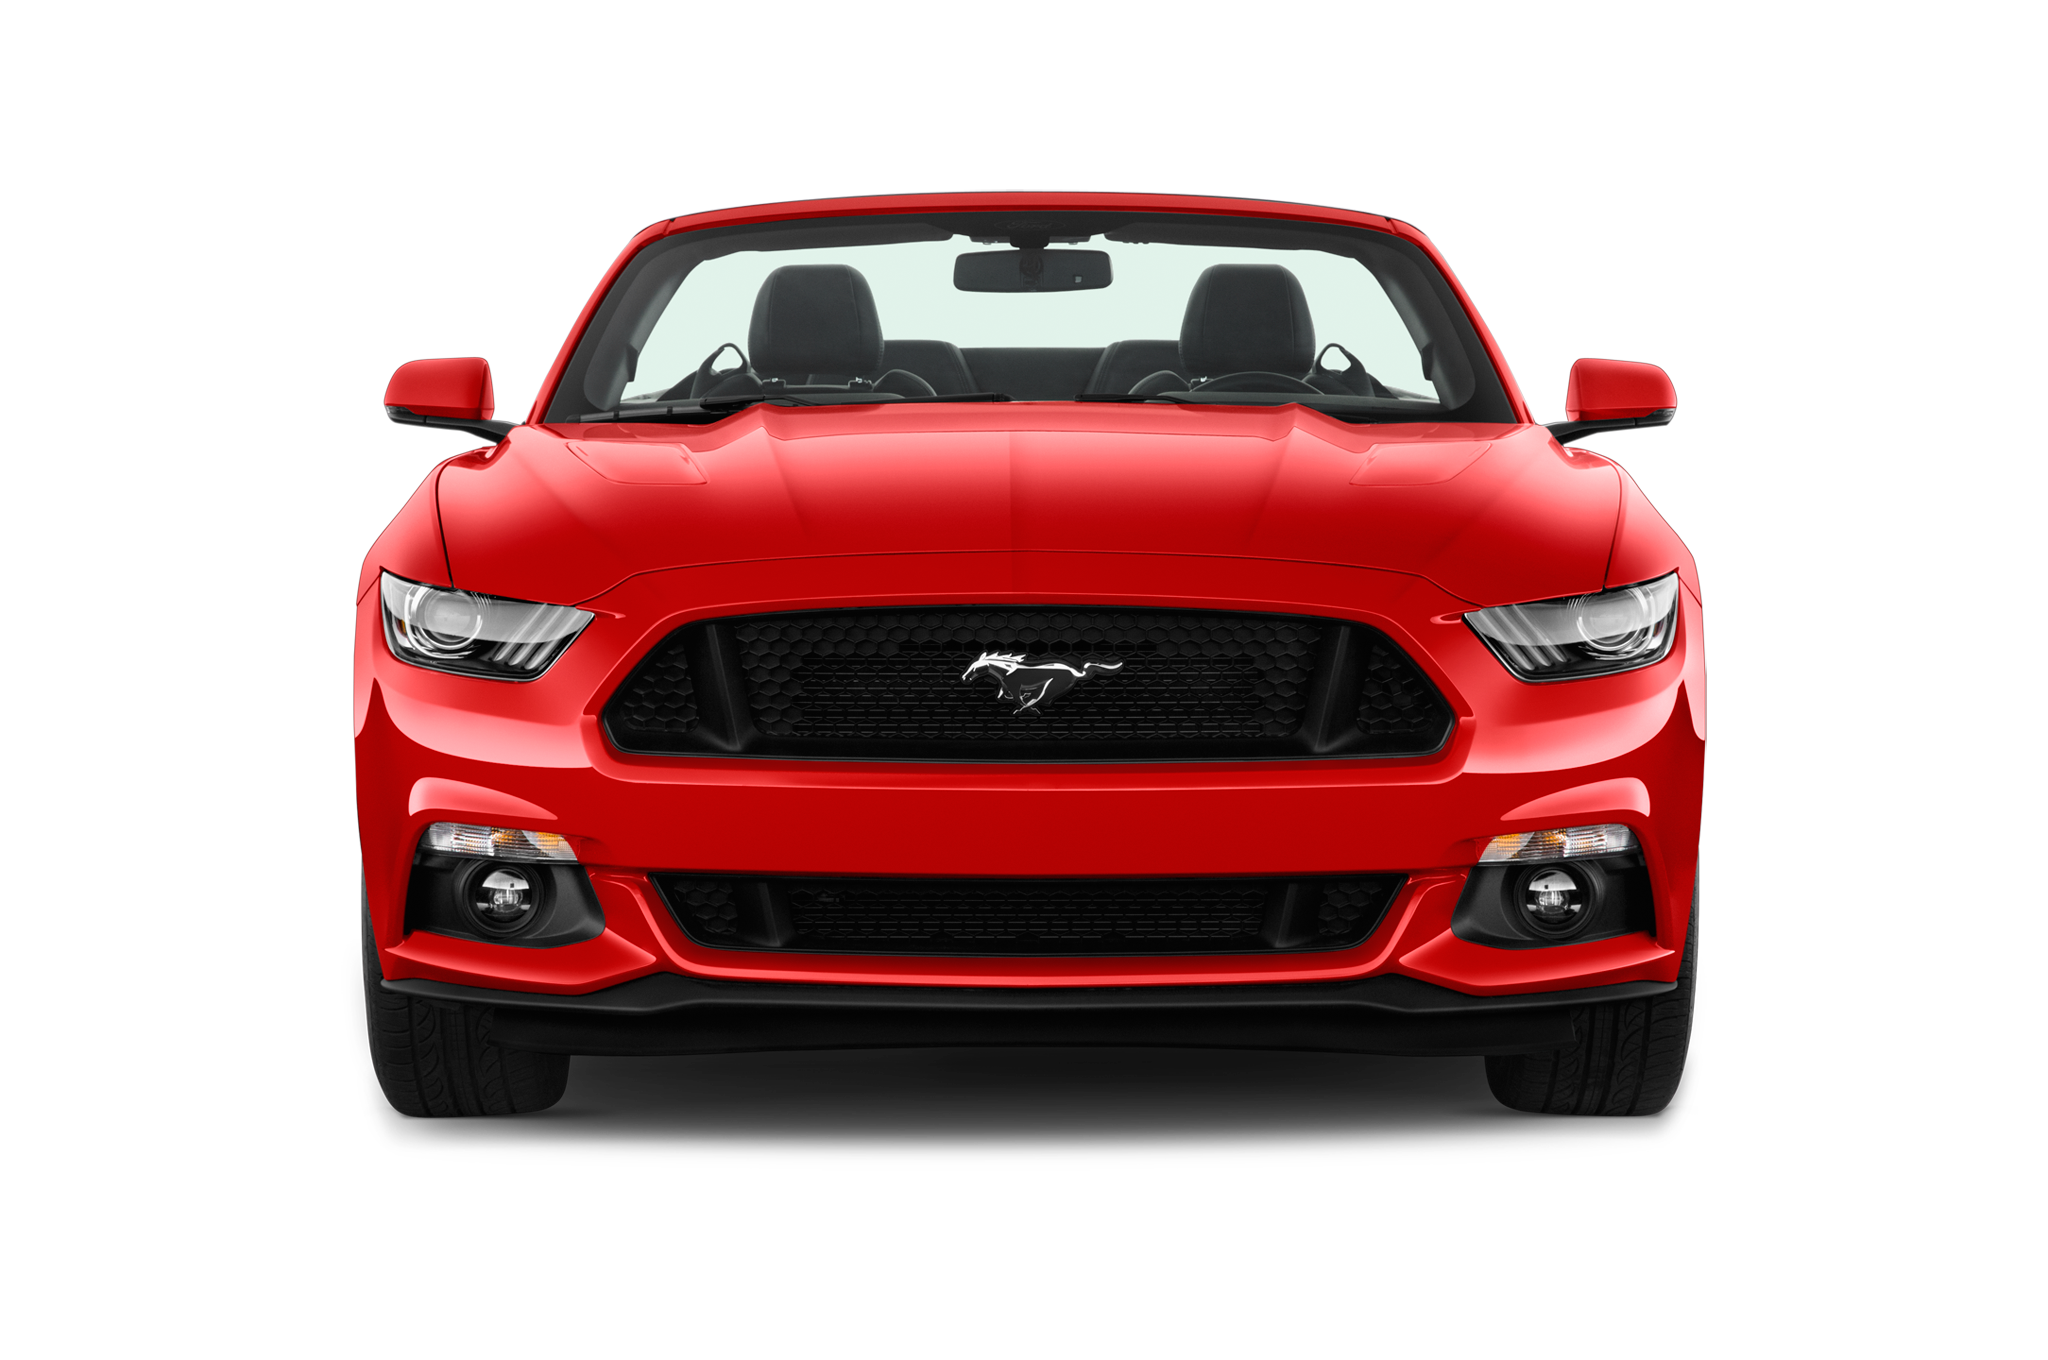 Ford png images free. Clipart cars 2015 mustang